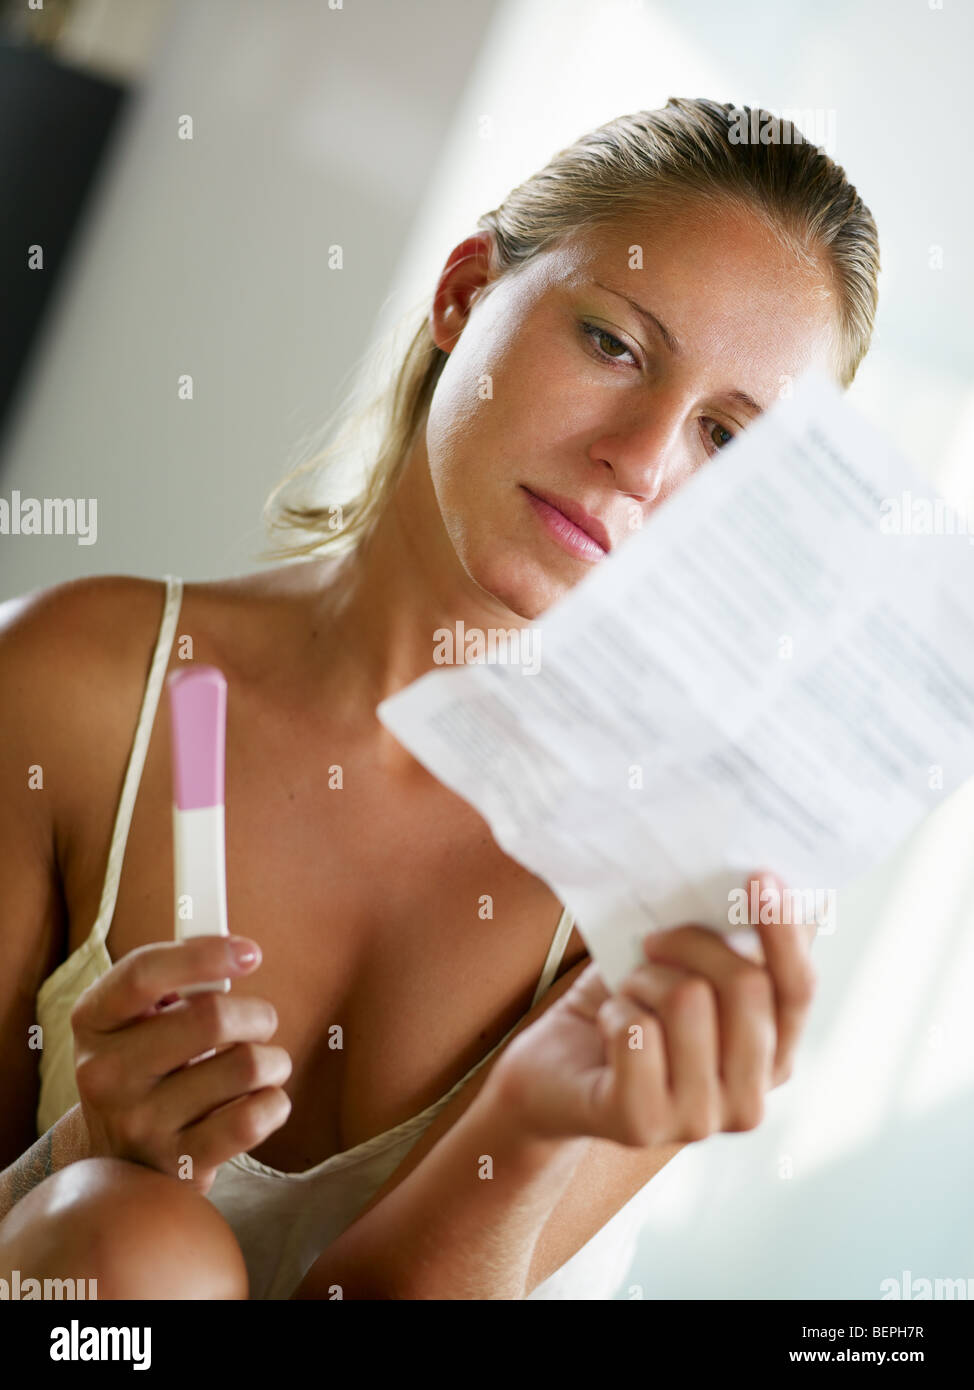 blonde woman holding pregnancy test and reading information. Stock Photo